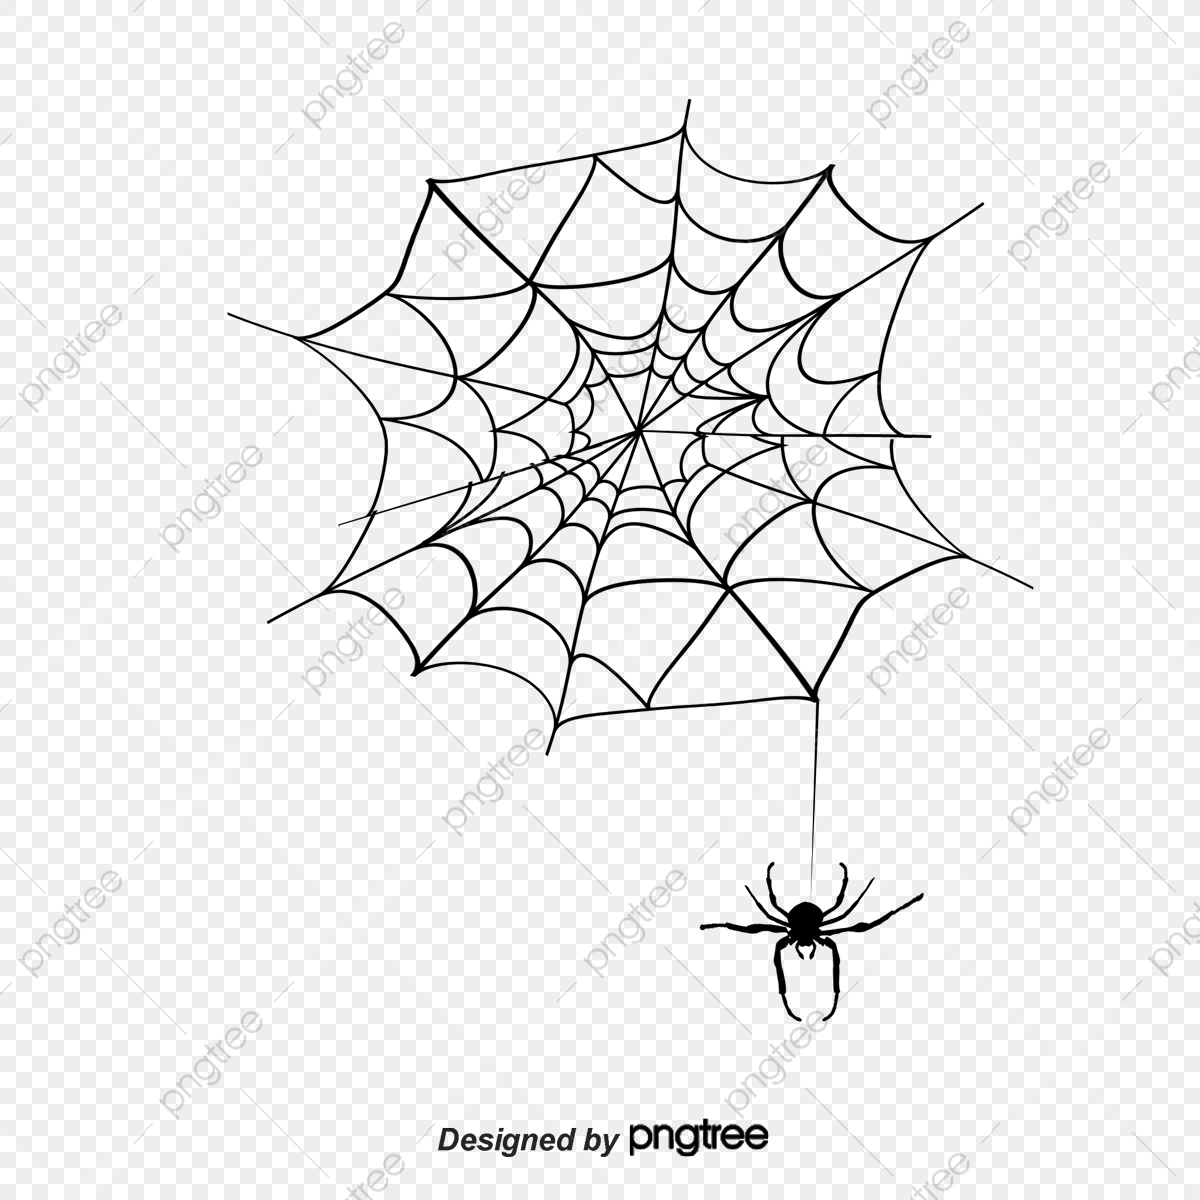 clip art royalty free Cartoon silhouette material . Spider web with spider clipart